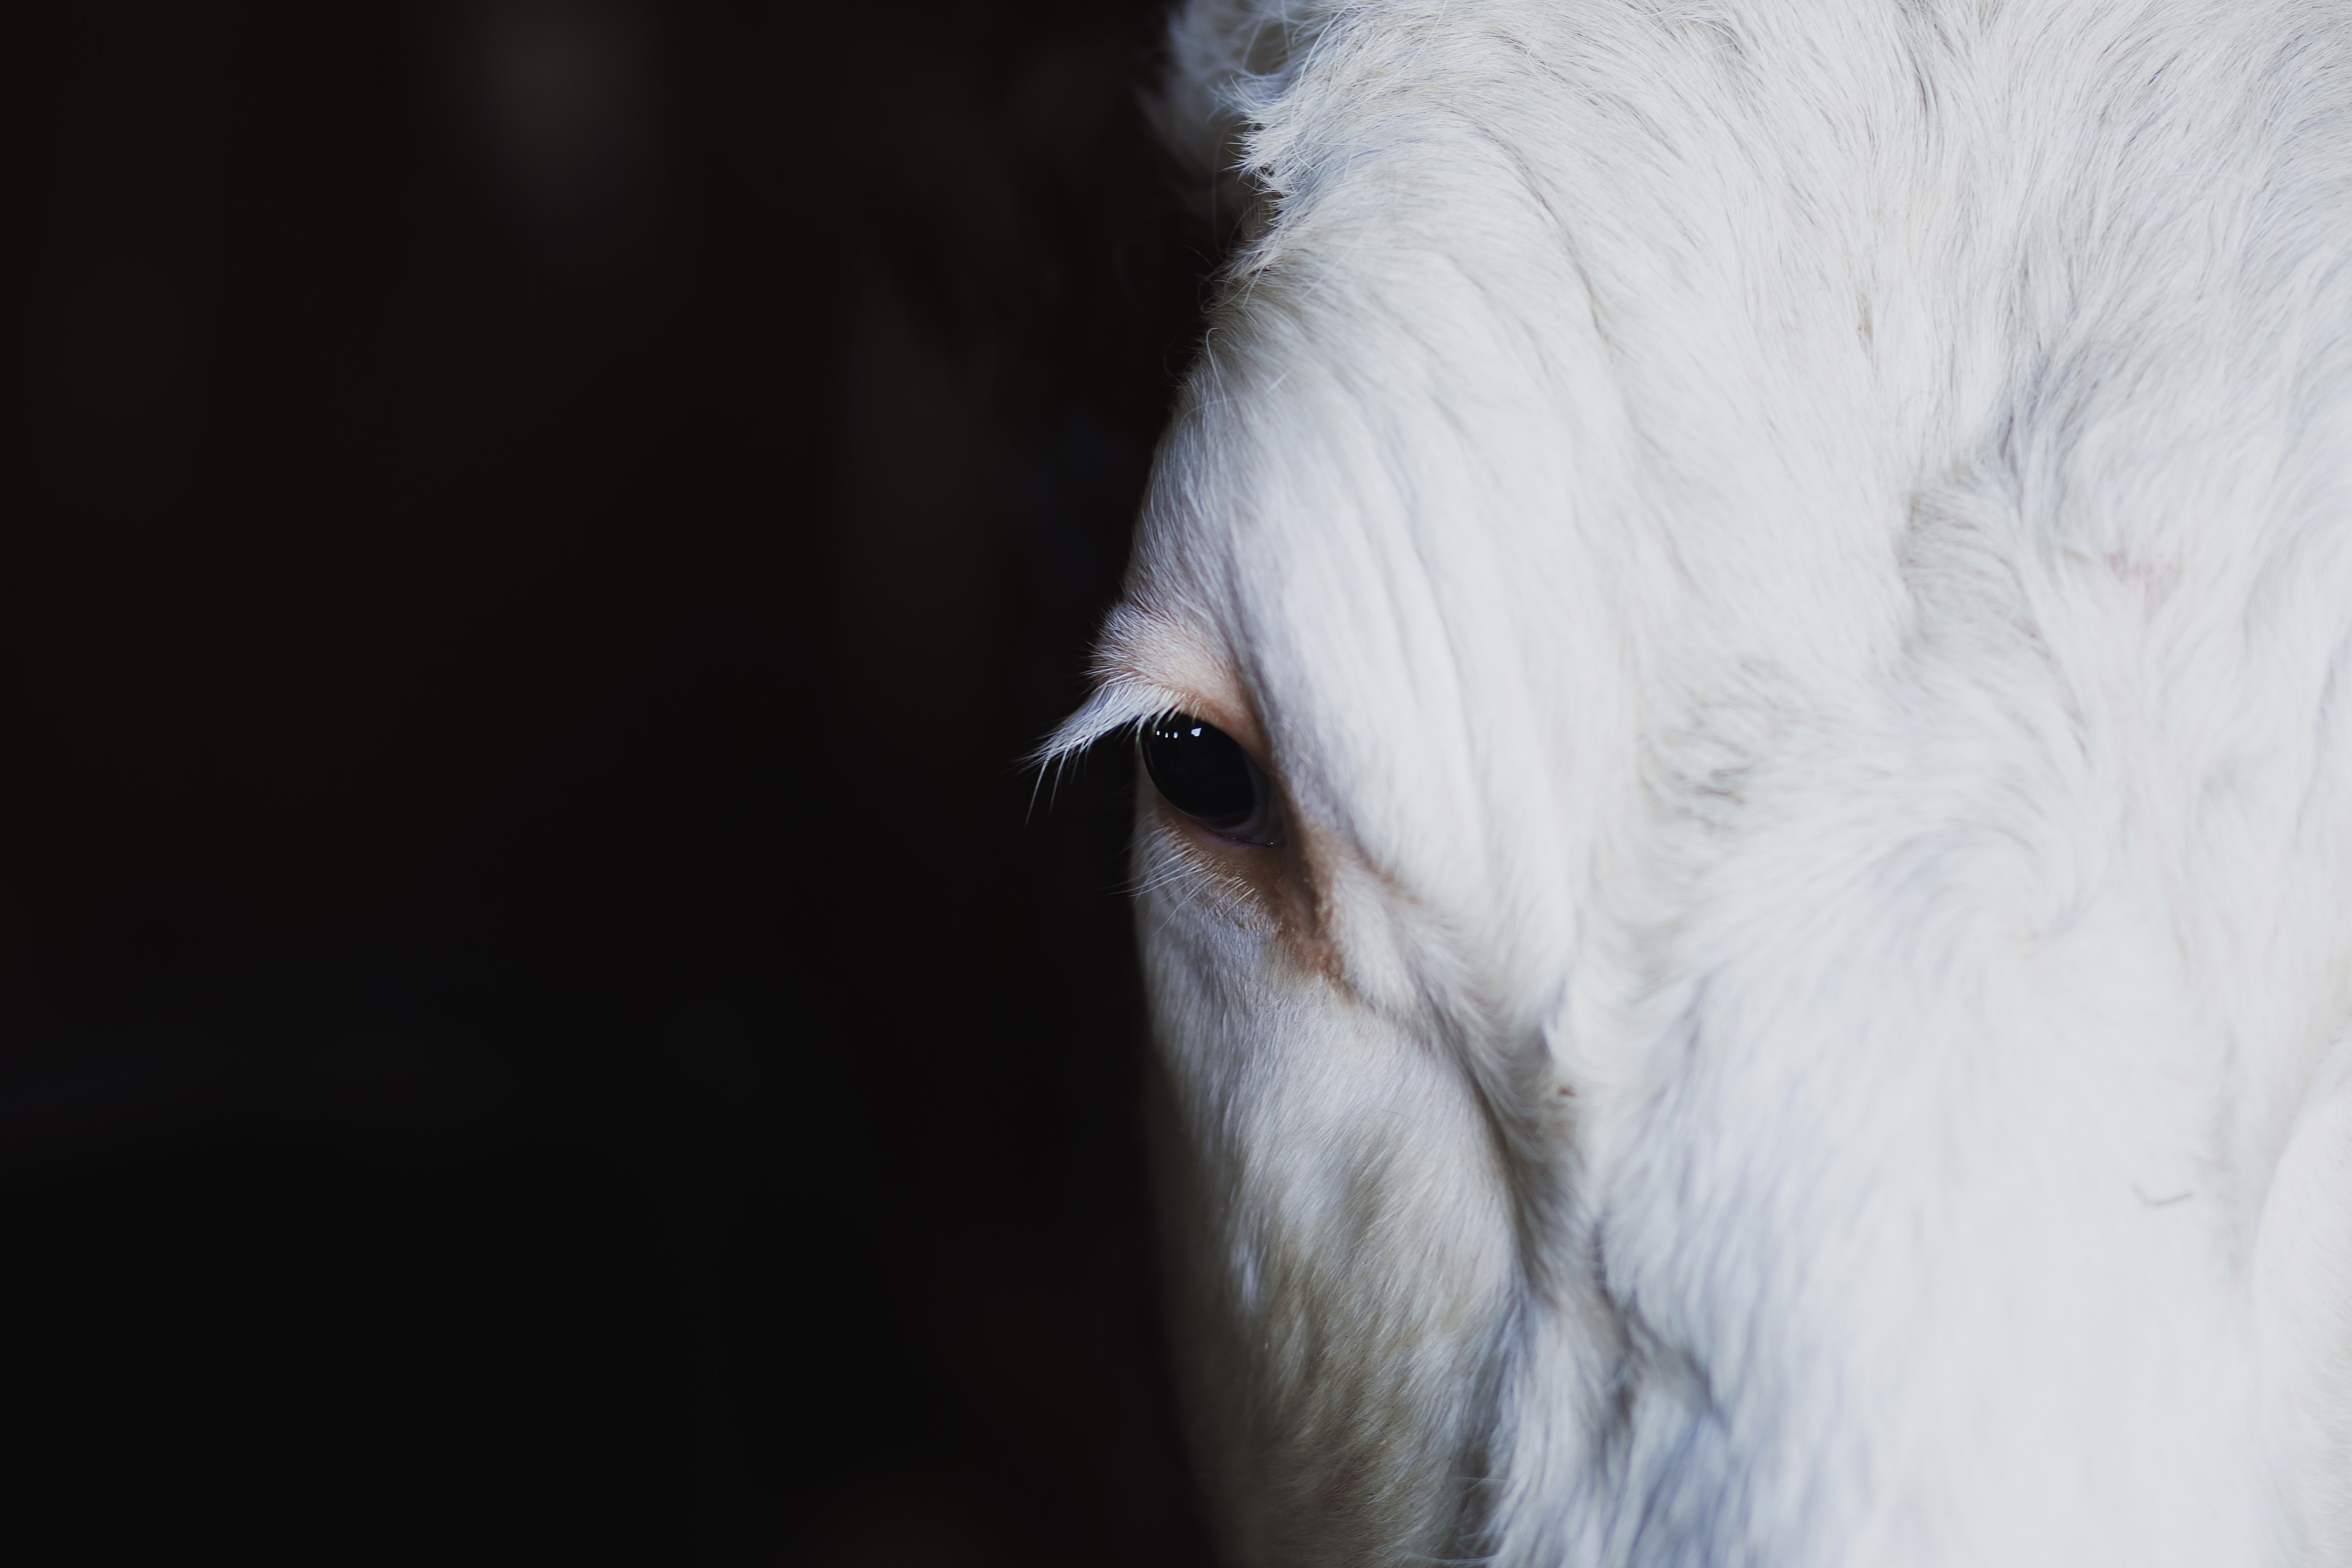 close-up photograph of white animal